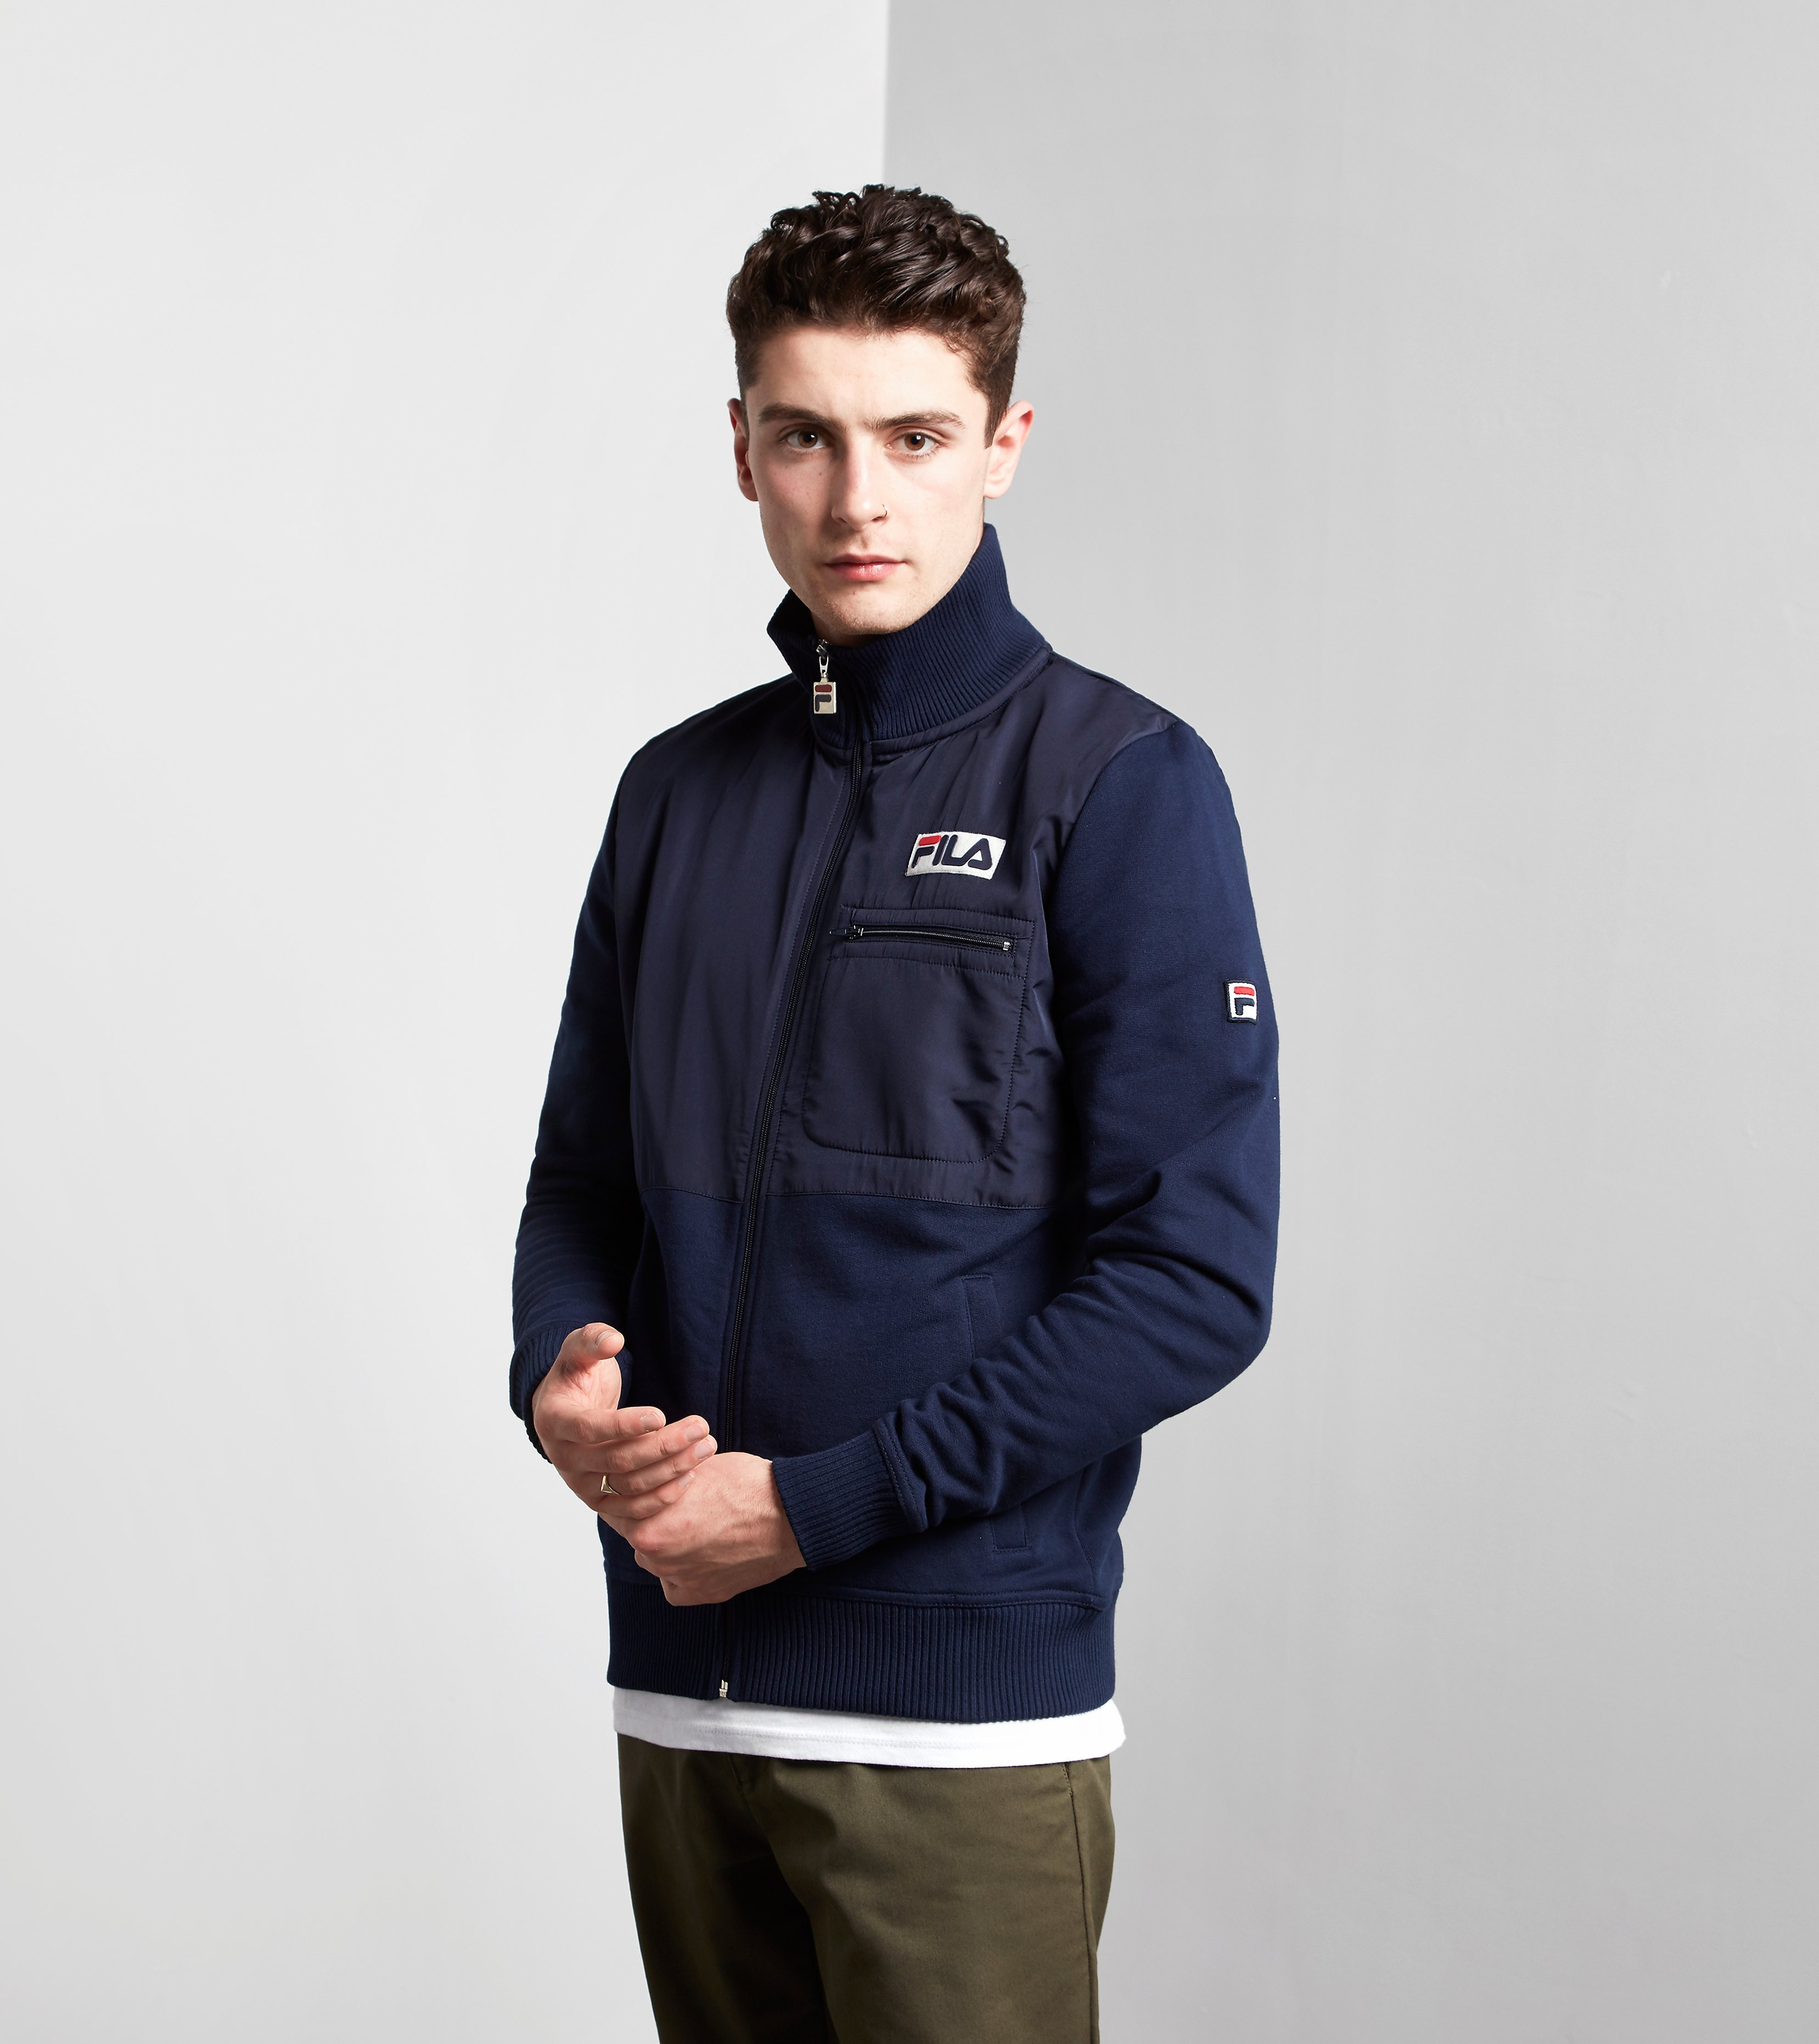 Fila Mariner Zip Jacket - size? Exclusive